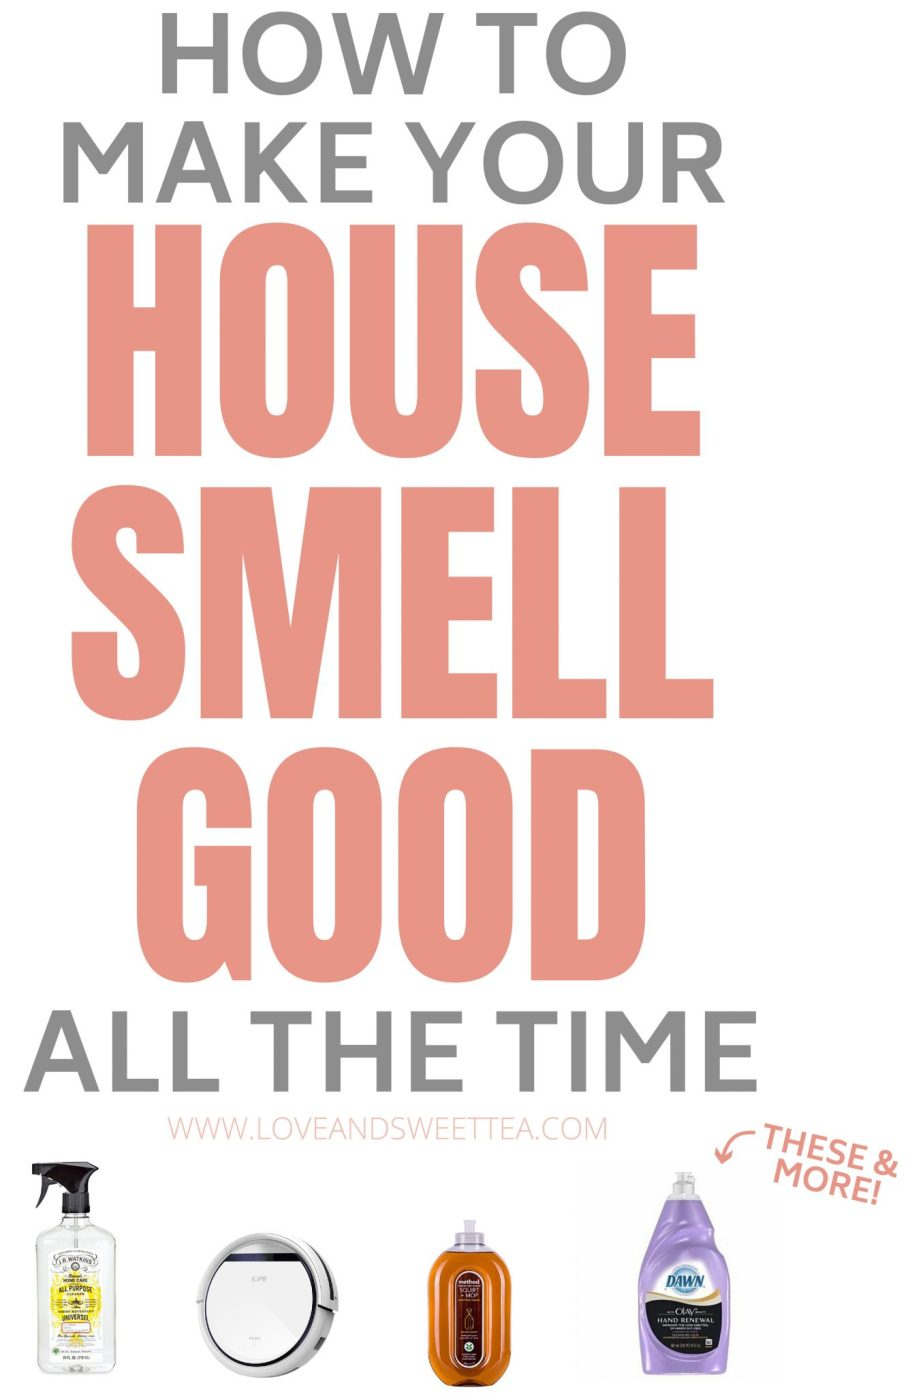 This girl explains how to make your house smell good all the time. Can't wait to try these tricks! No lying, an amazing smelling house kinda makes me feel like a princess. You can make your house smell good (& clean) without lots of harsh chemicals, too.